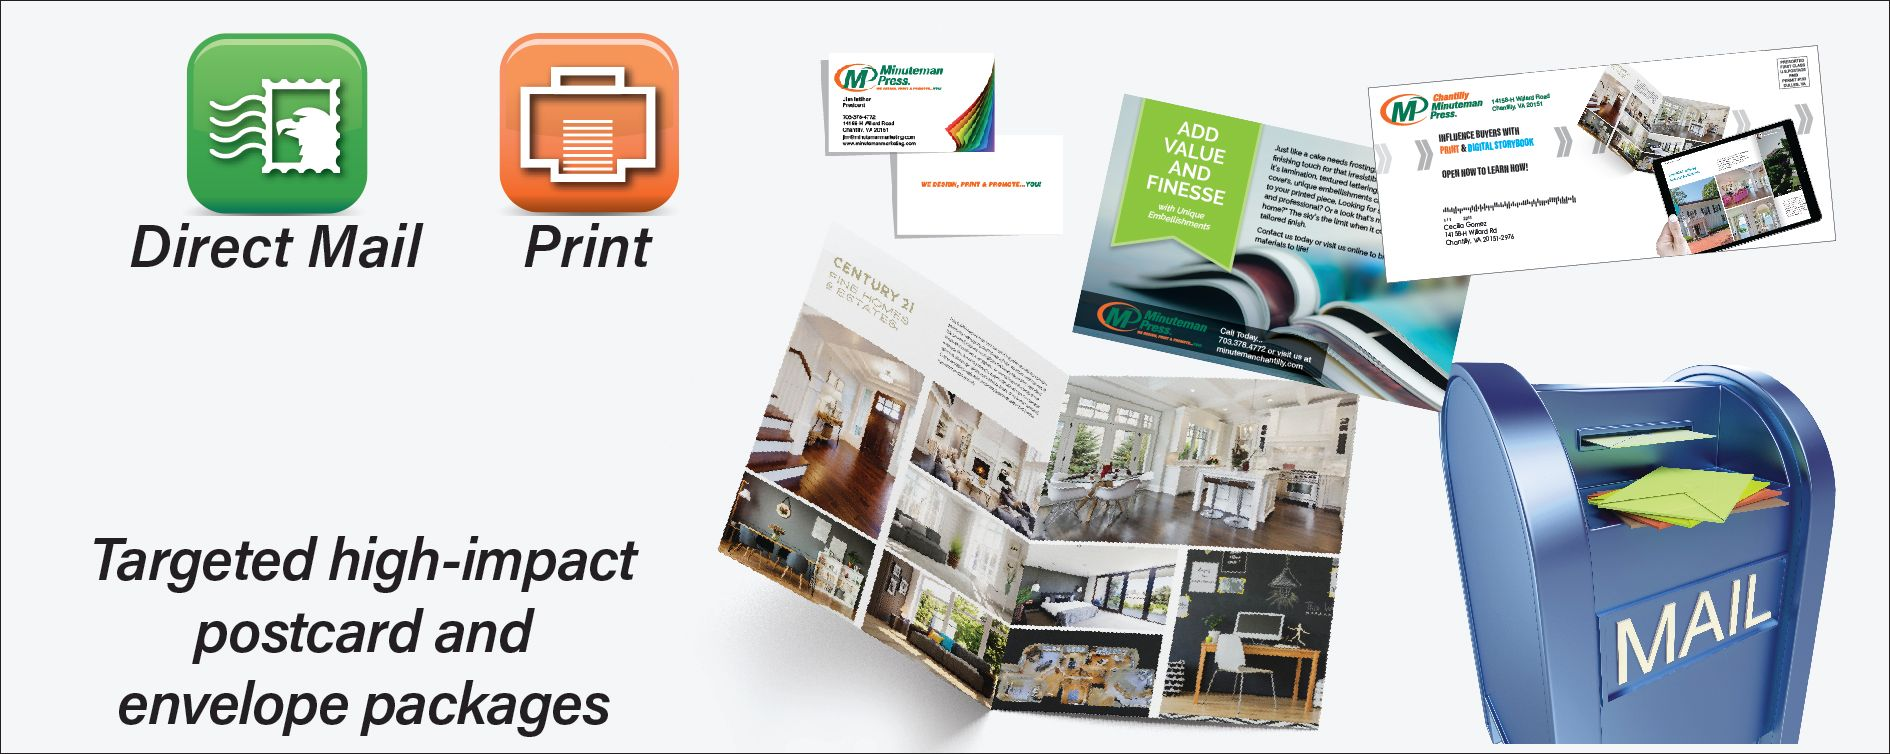 Print & Direct Mail